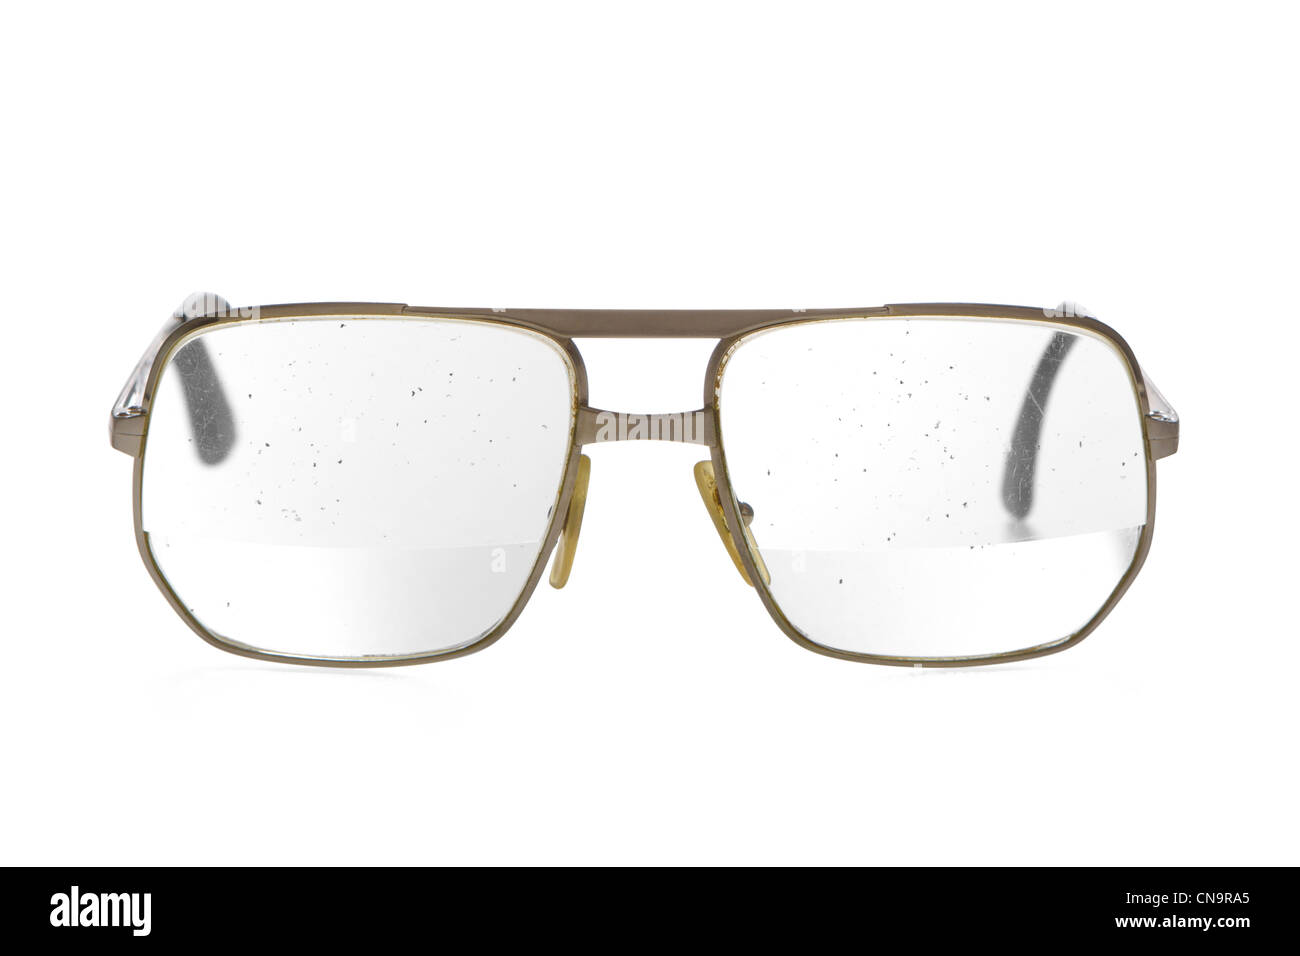 Glasses Frames Dirty : Very old, dirty, beat-up eyeglasses with thick bifocal ...